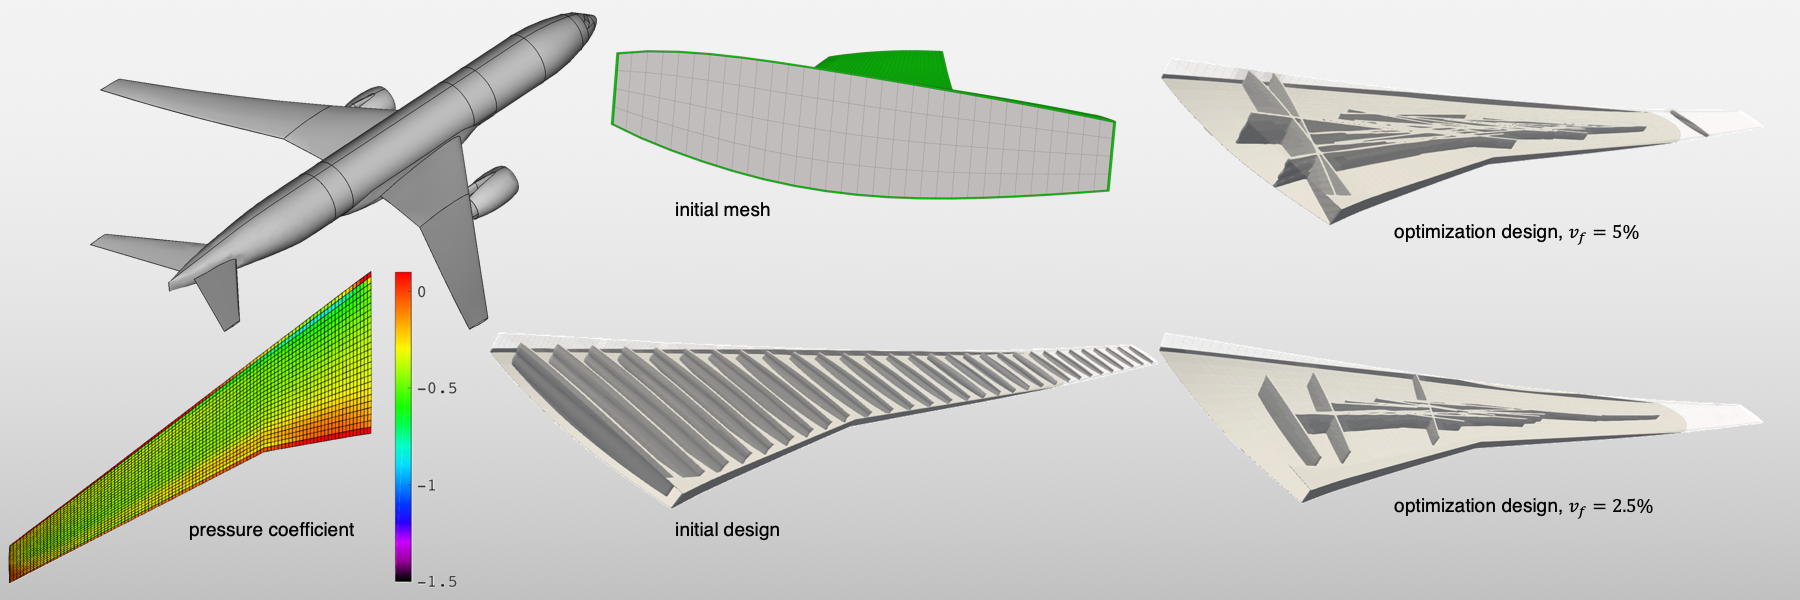 This slide shows examples of the topology optimization of the ribs-and-spars wing box structure